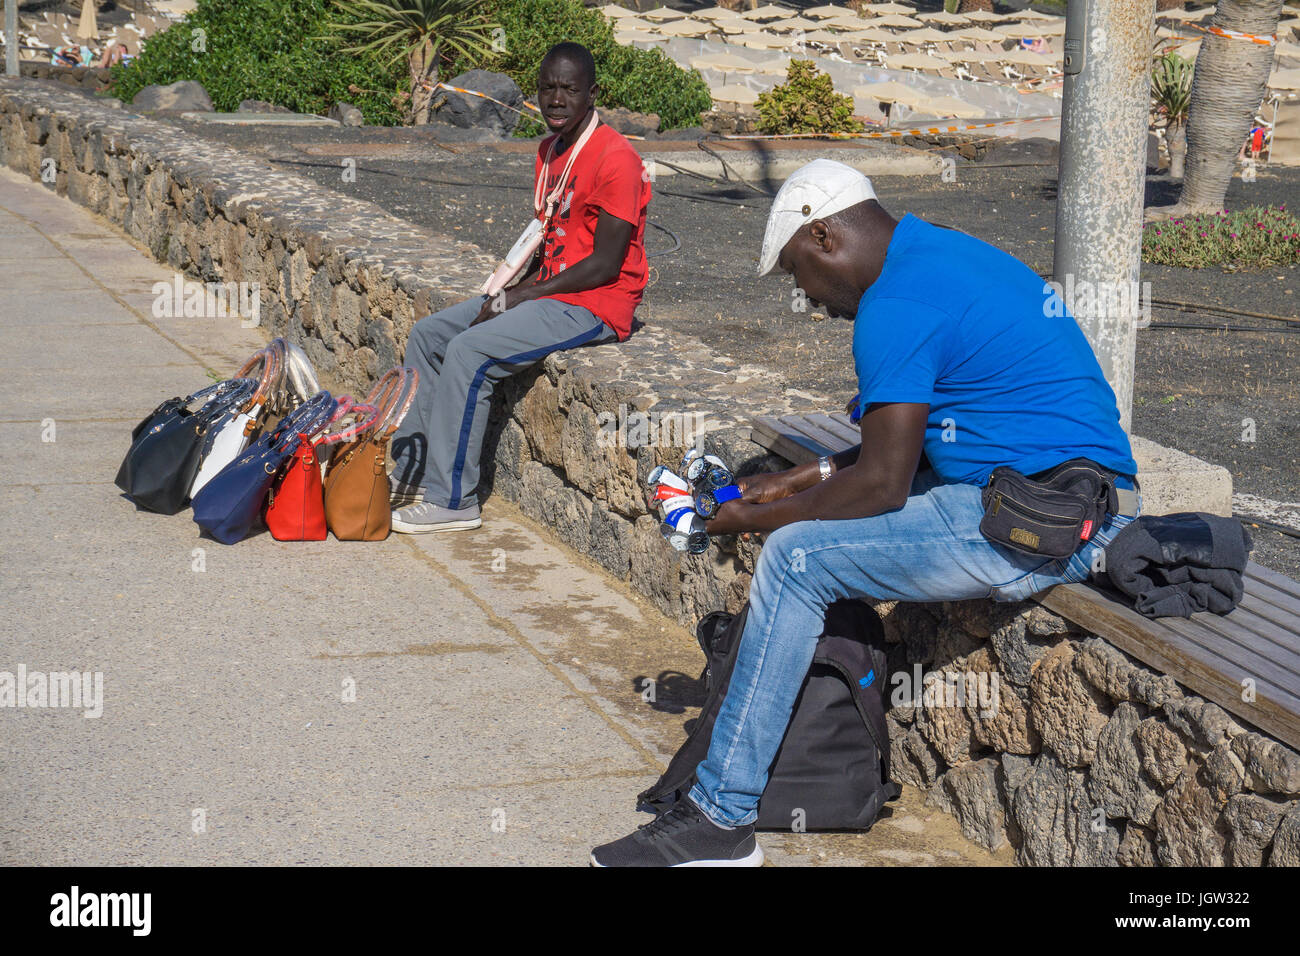 African street seller trying to sell handbags and watches at promenade Playa de las Cucharas, Costa Teguise, Lanzarote, - Stock Image